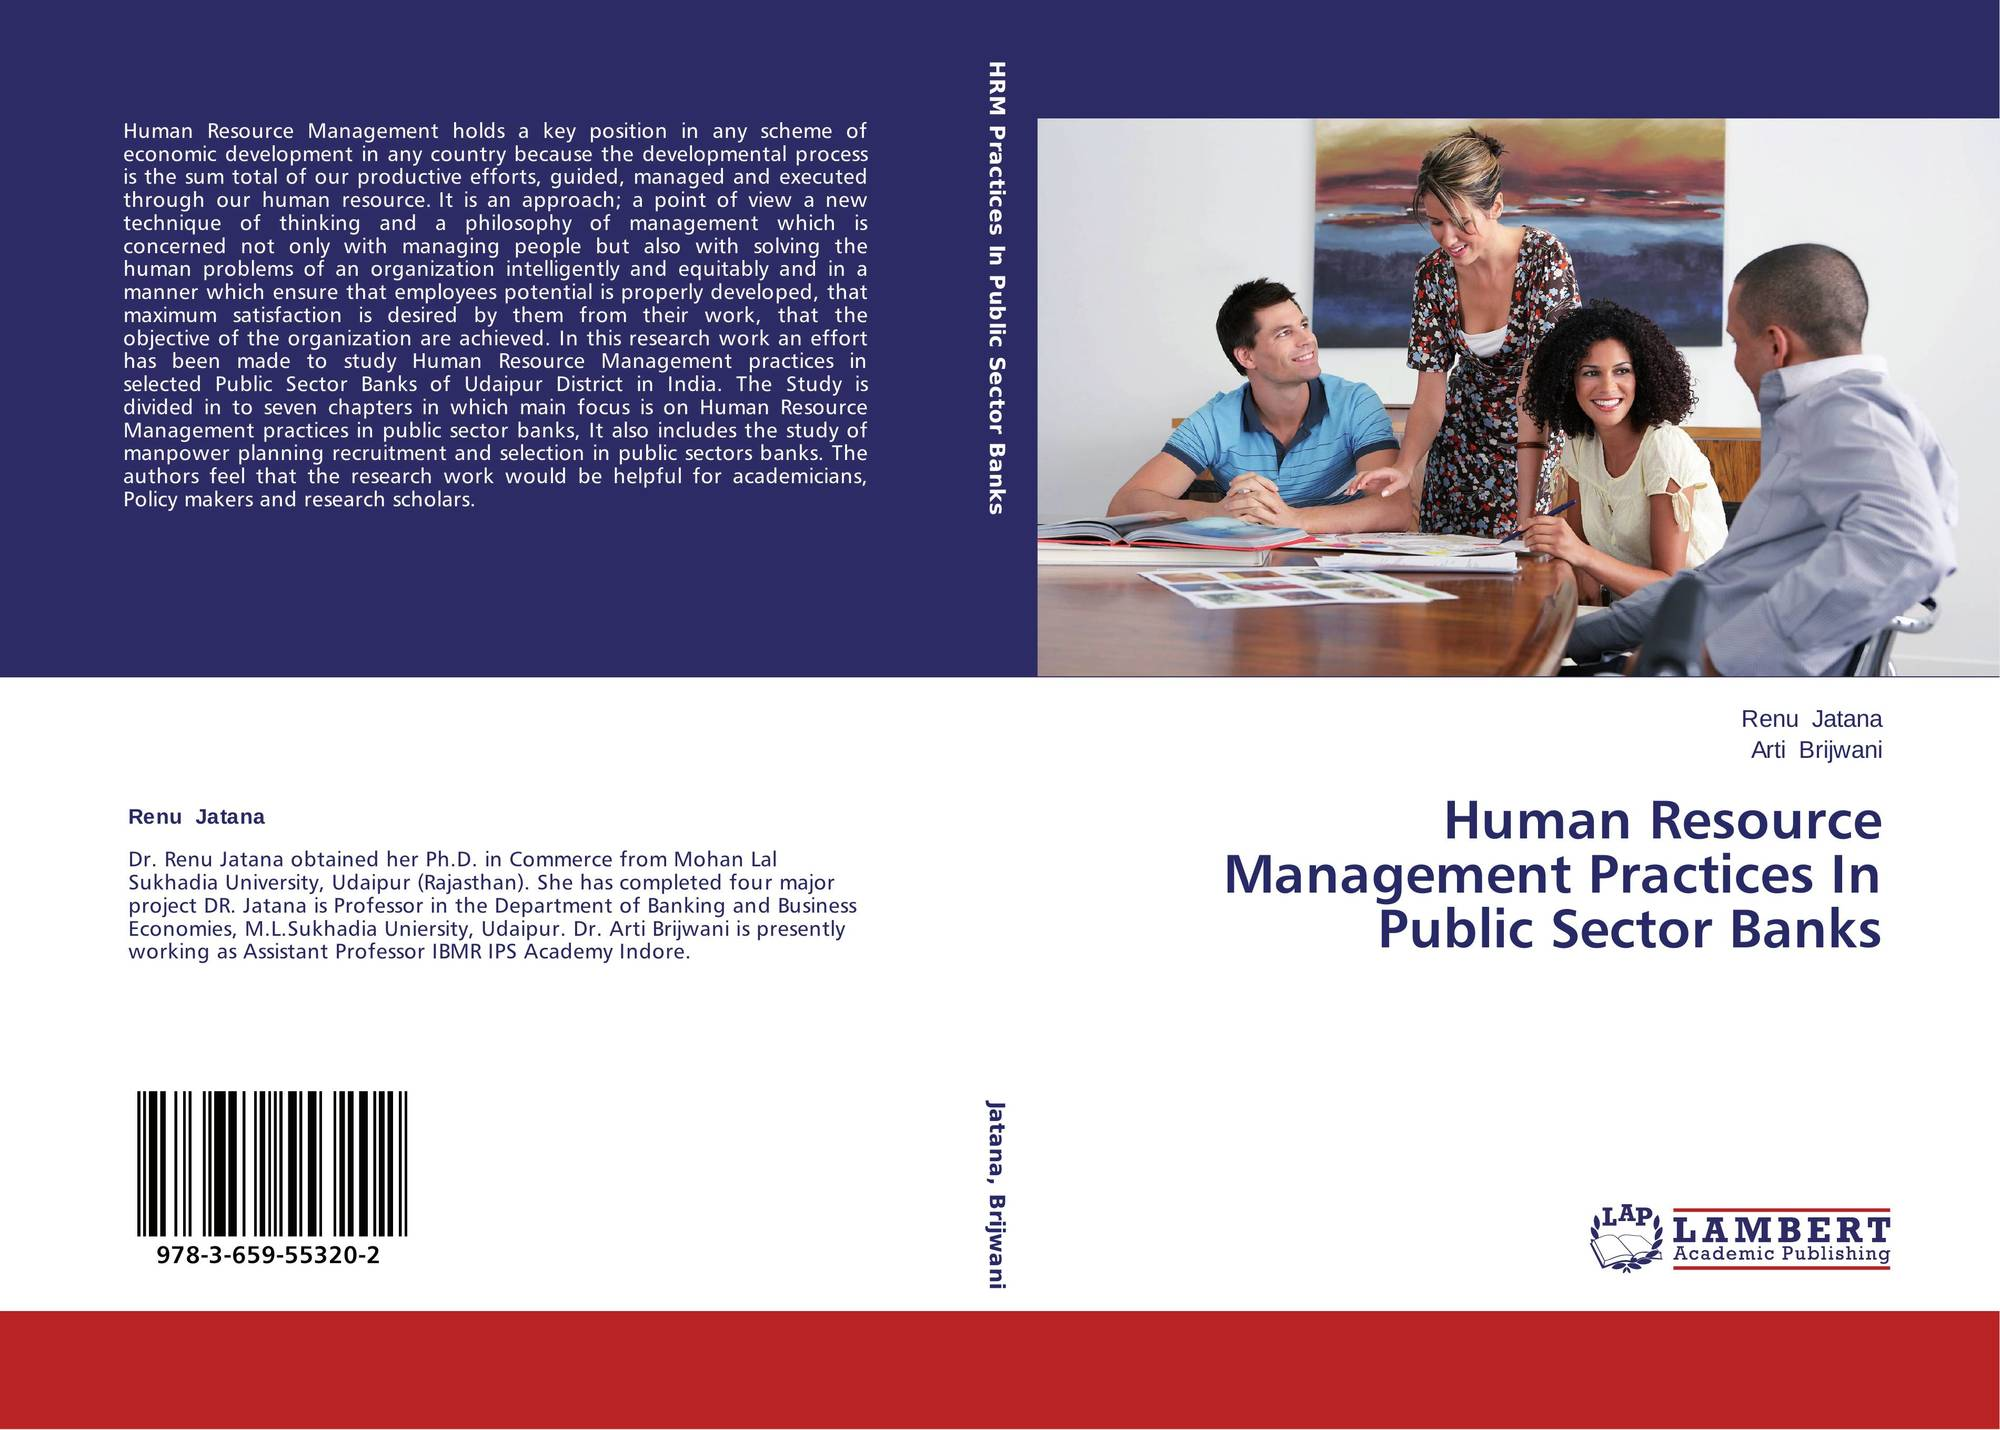 human resource management practices of banking sector of bangladesh a case study on exim bank